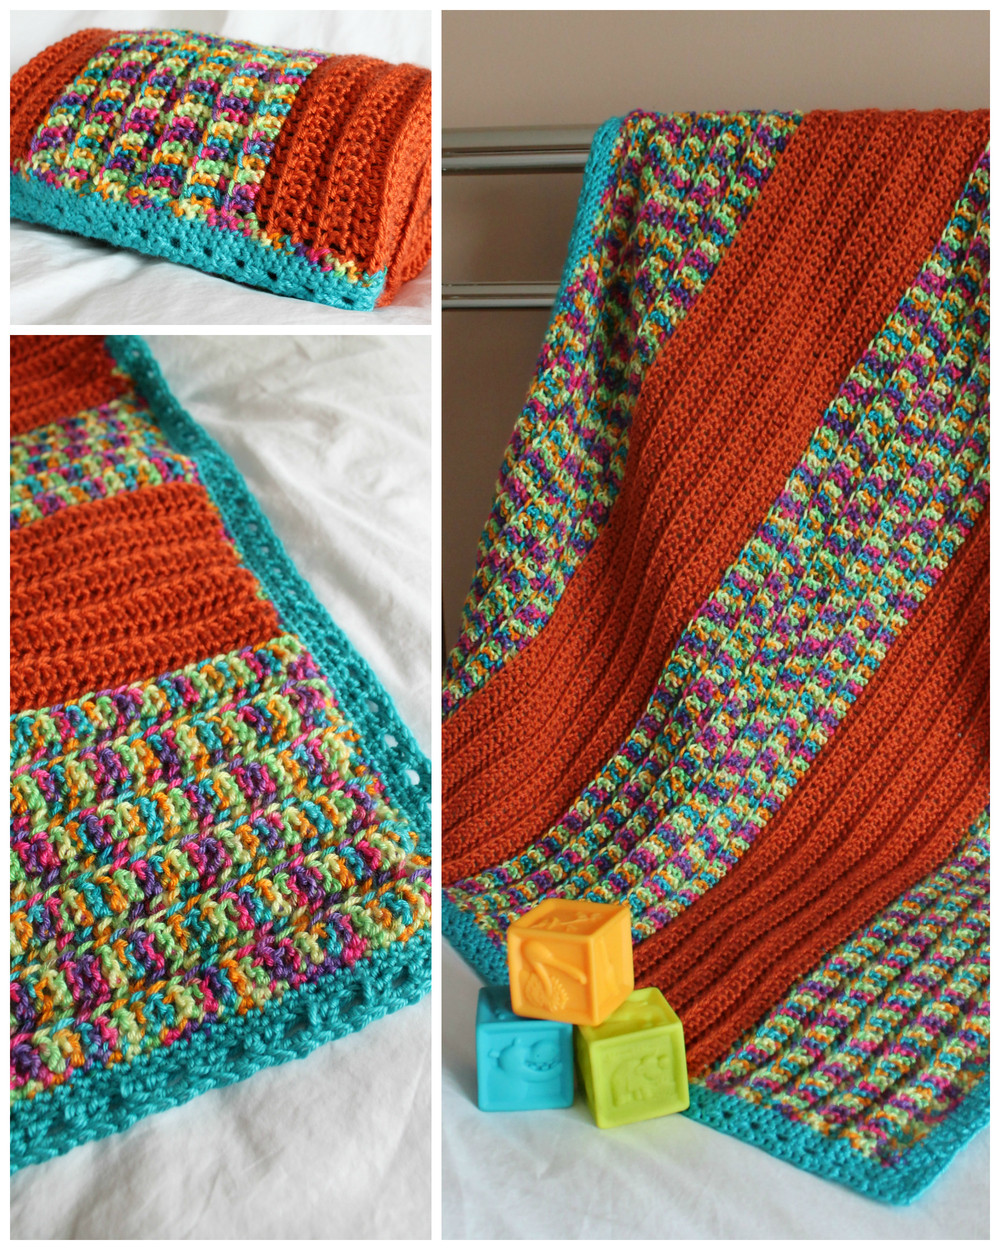 Big Crochet Blanket Awesome Happy Stripes Crochet Baby Blanket Of Adorable 43 Photos Big Crochet Blanket